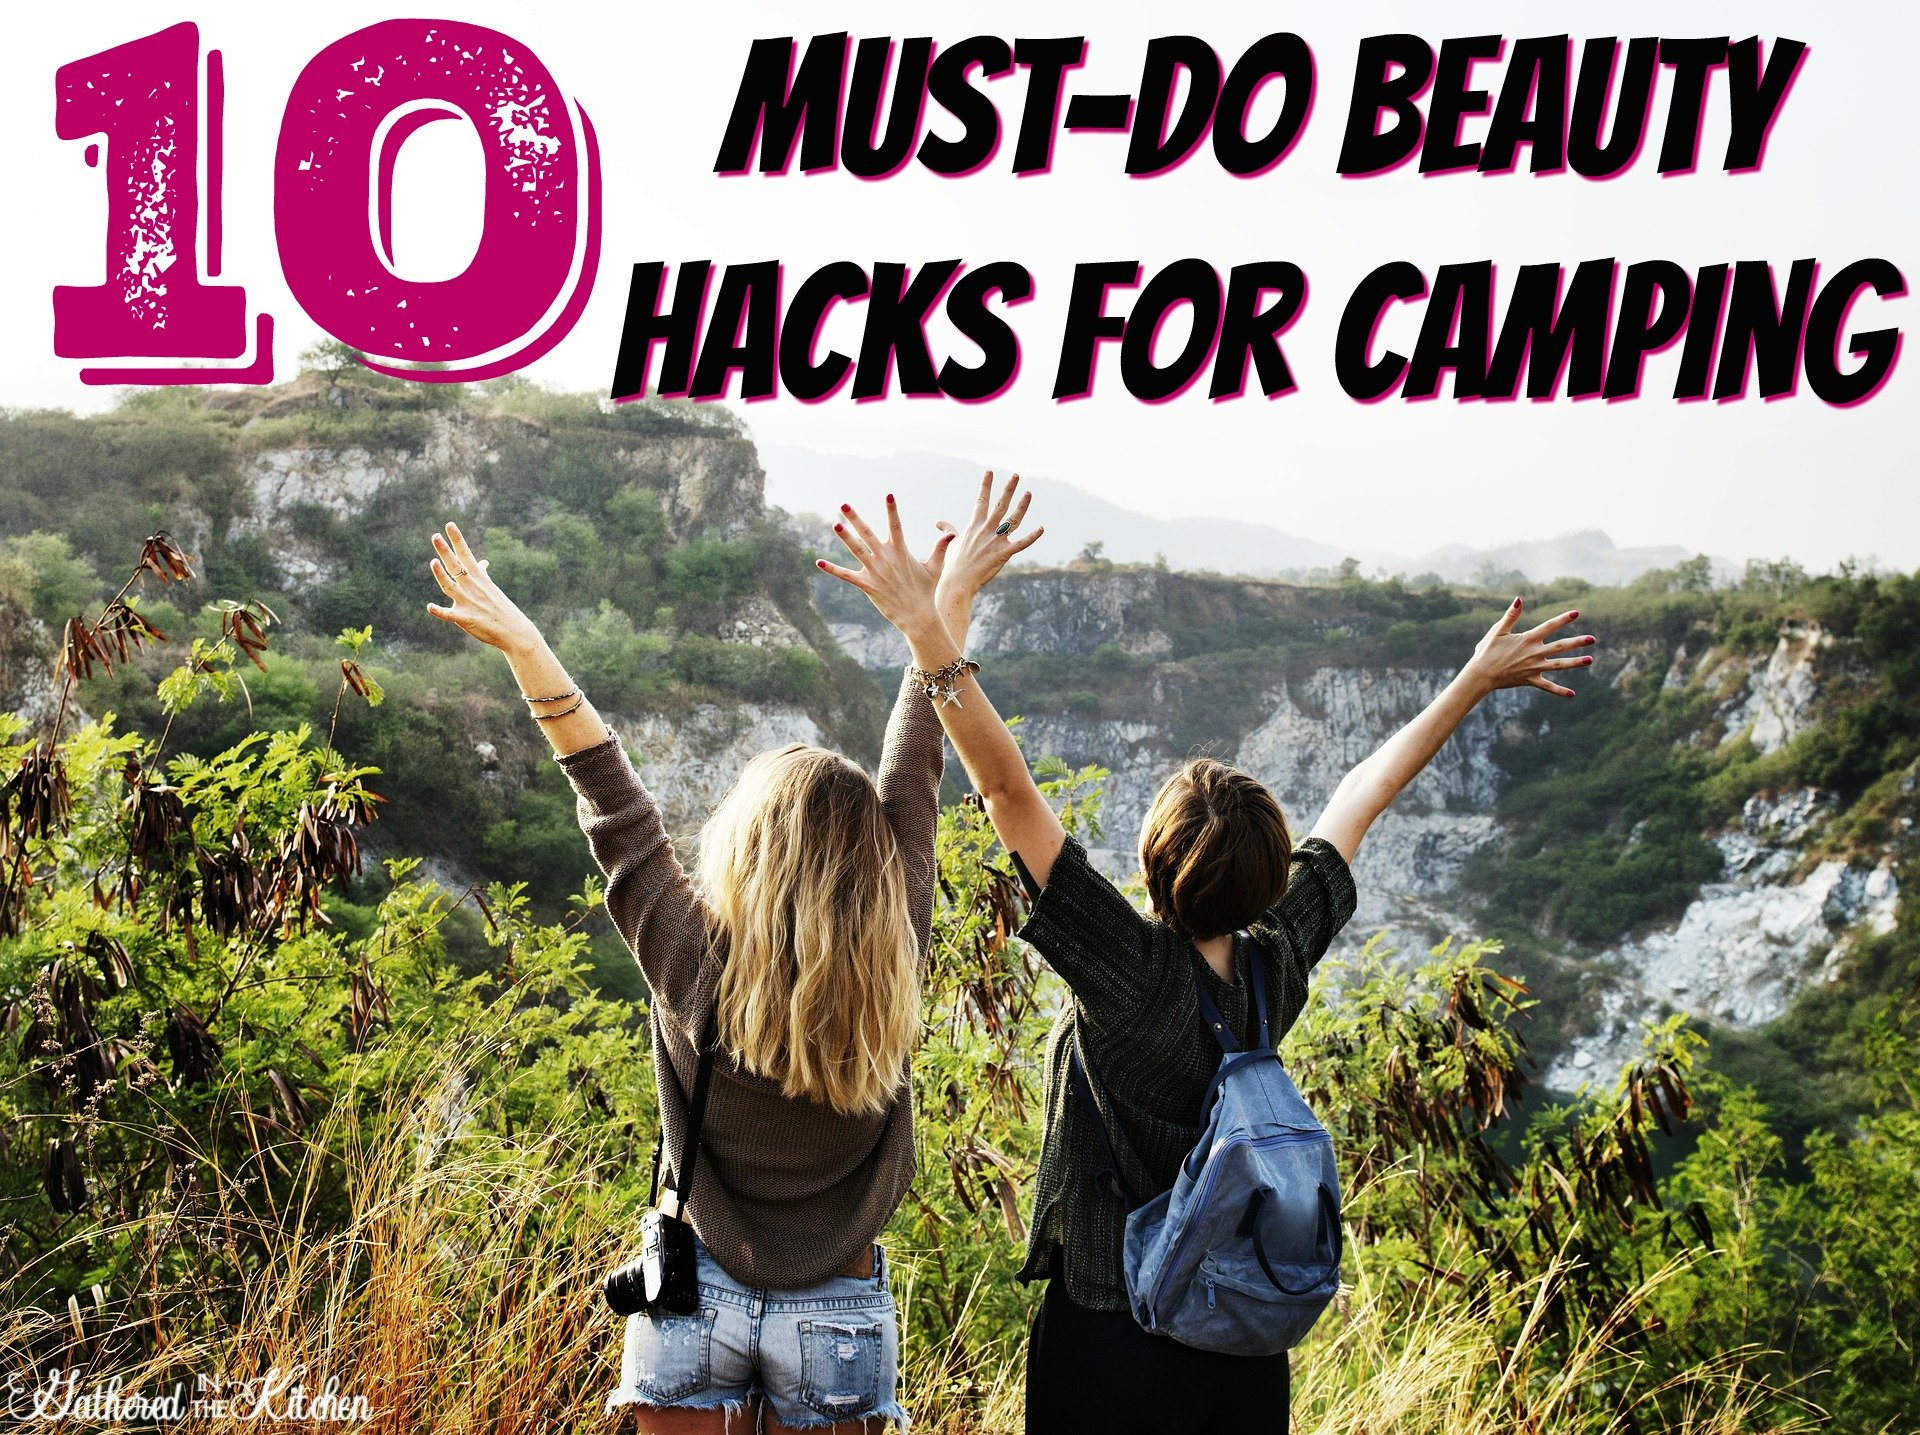 10 must-do beauty hacks for camping